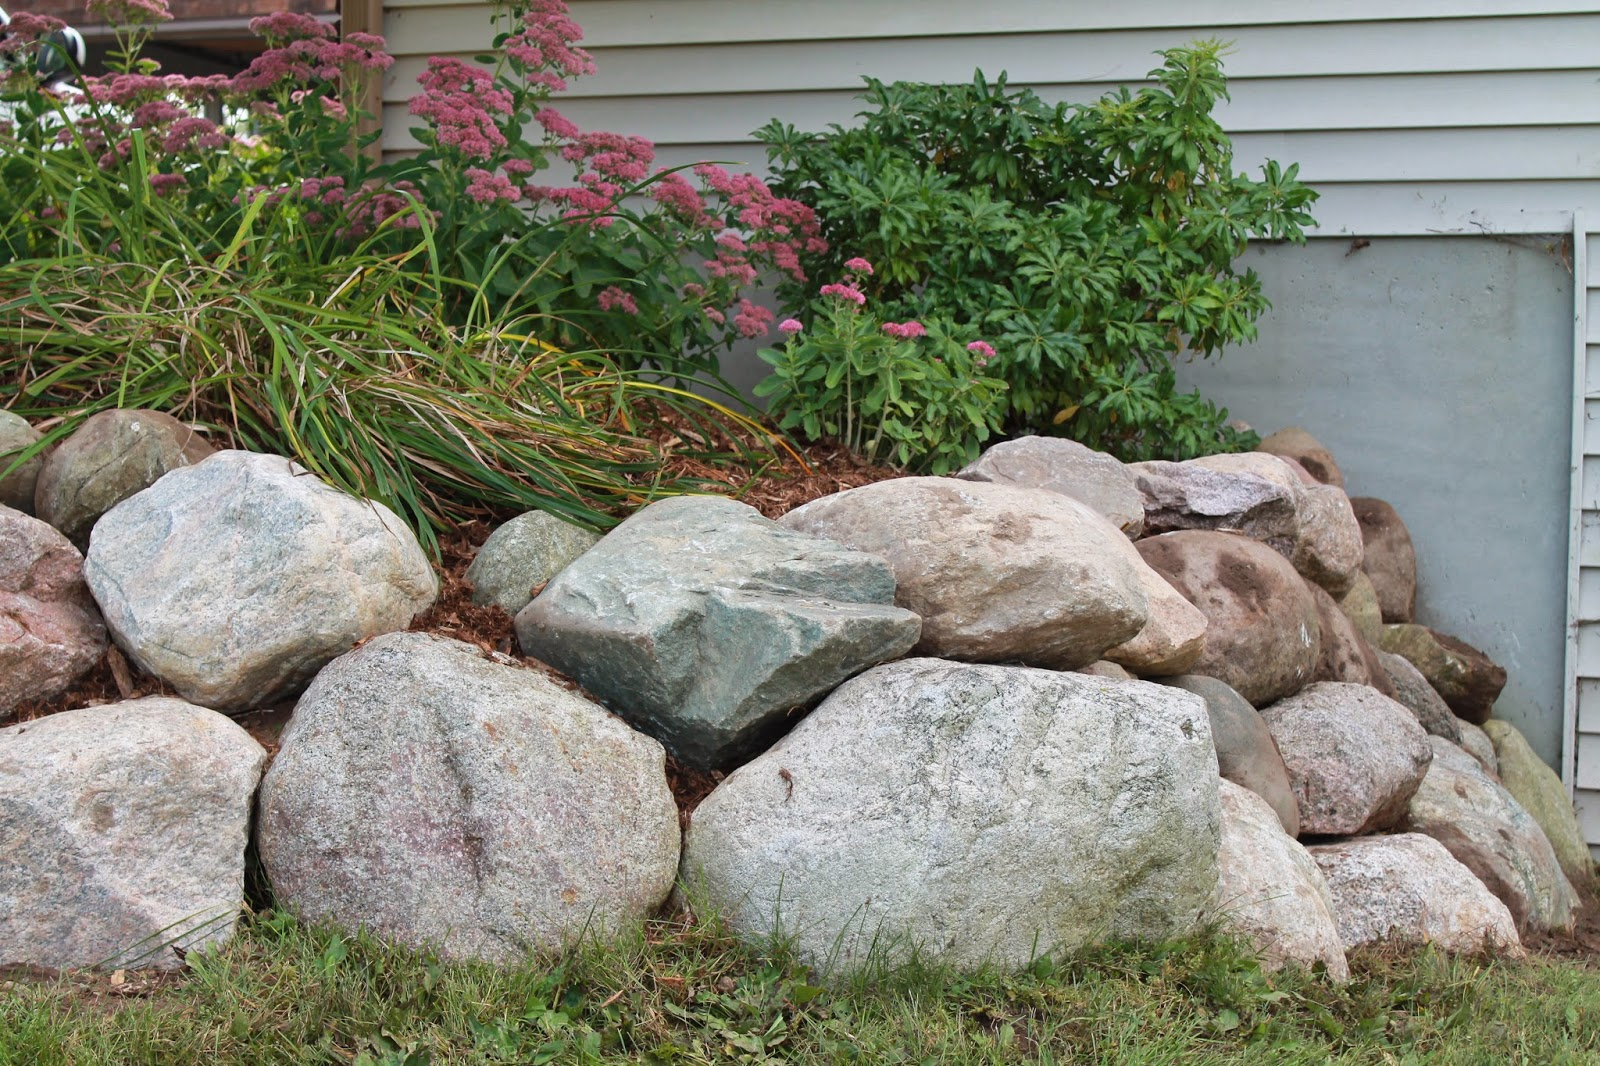 Depending On Your Location You May Be Able To Save Even More Money By Scamming Fieldstone From Fields In The Area Especially Keep Mind Any Farms Or